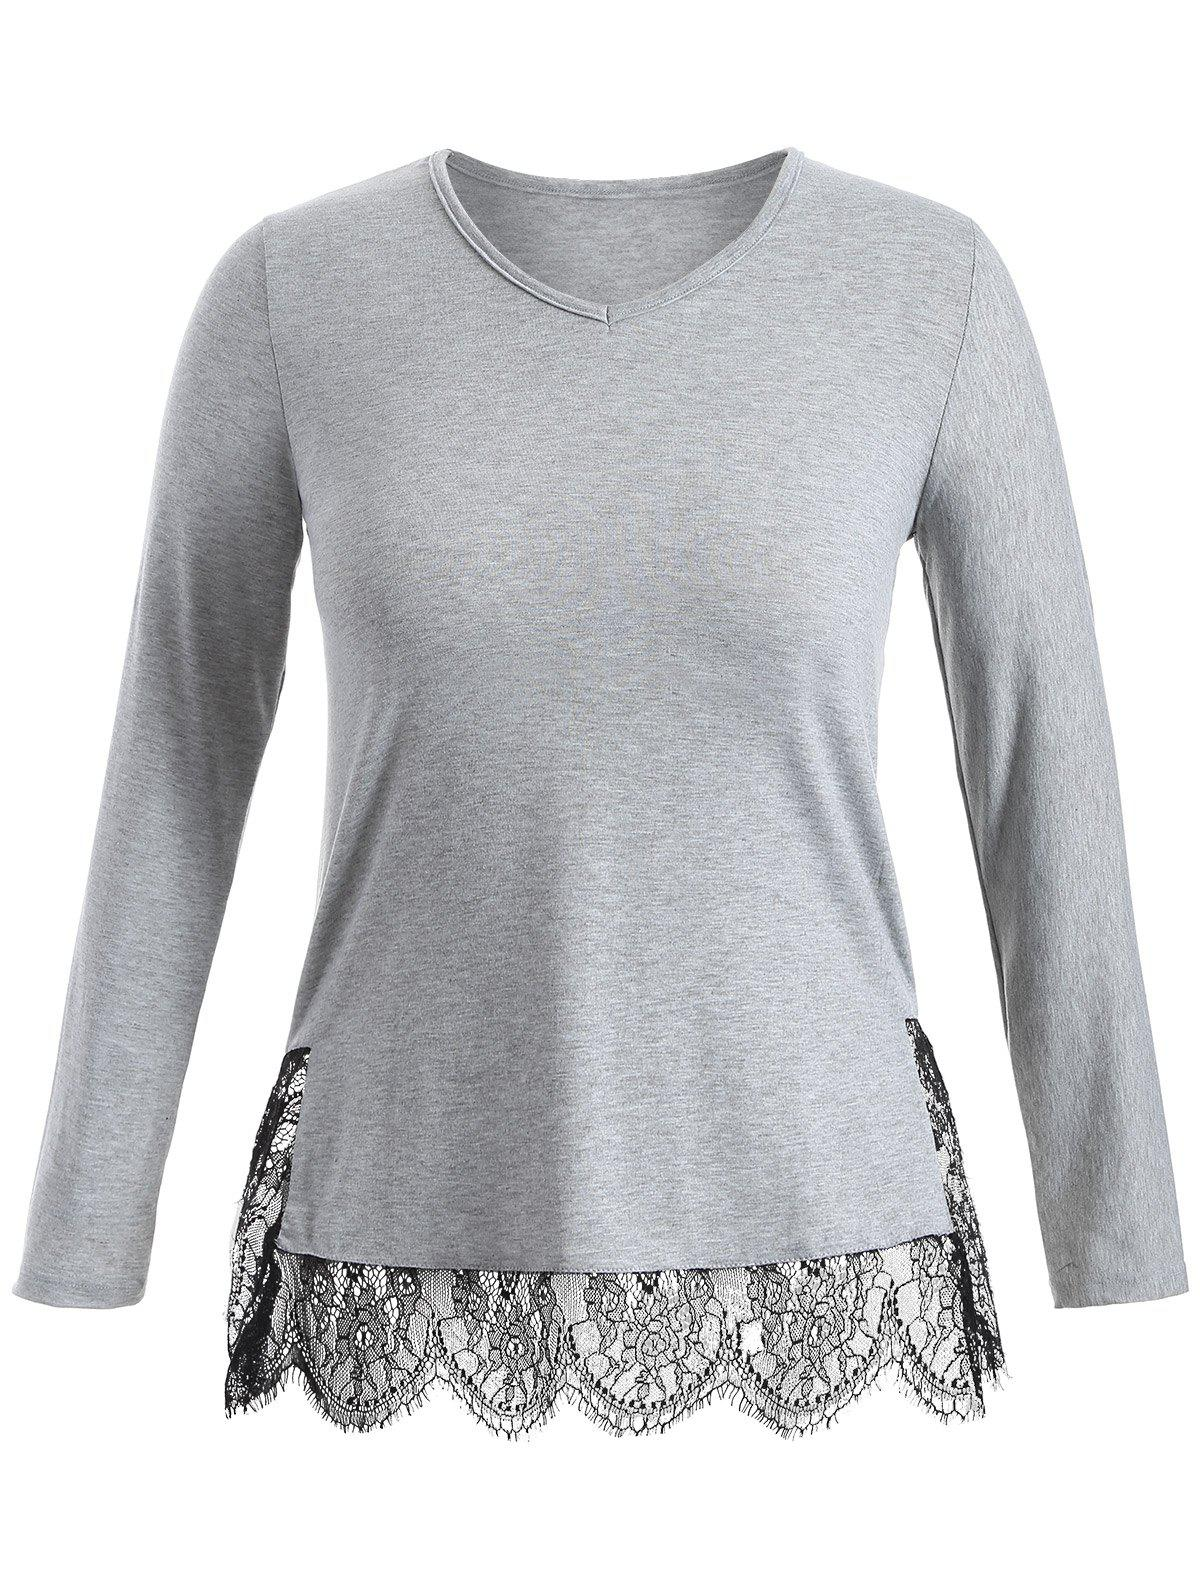 Long Sleeve Lace Panel Plus Size TeeWomen<br><br><br>Size: 3XL<br>Color: GRAY